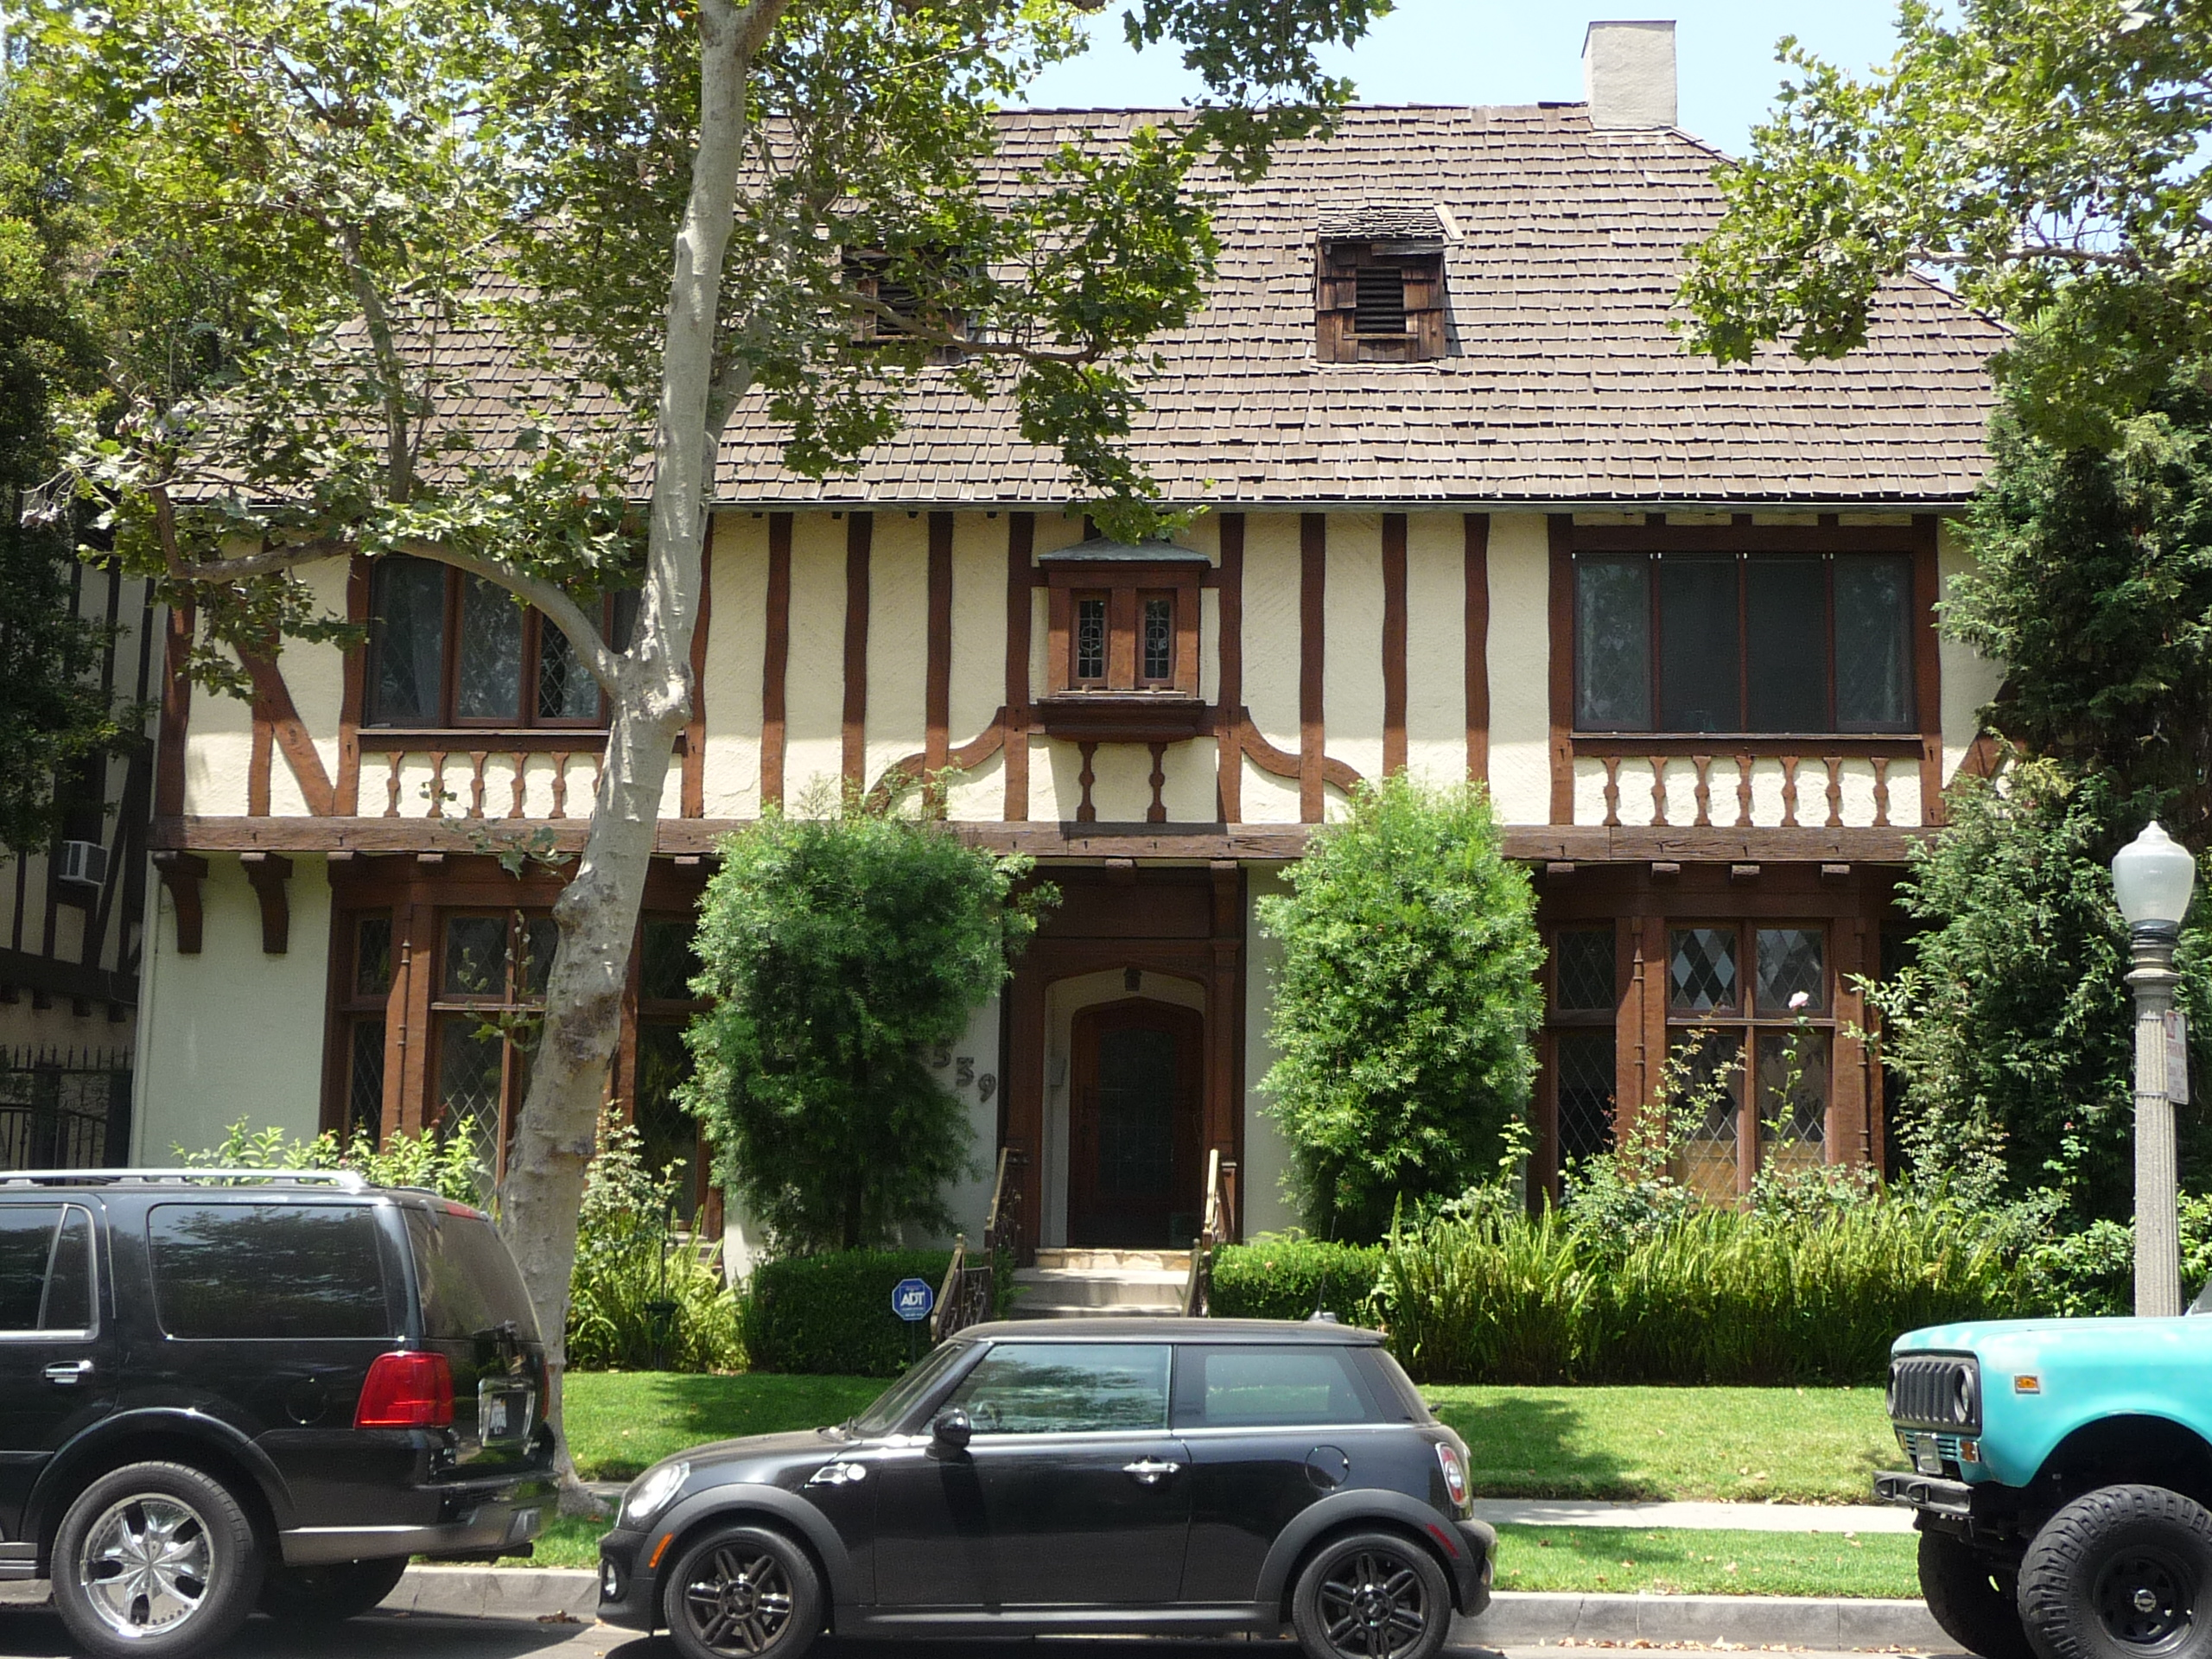 339 N SYCAMORE AVE - PHOTO